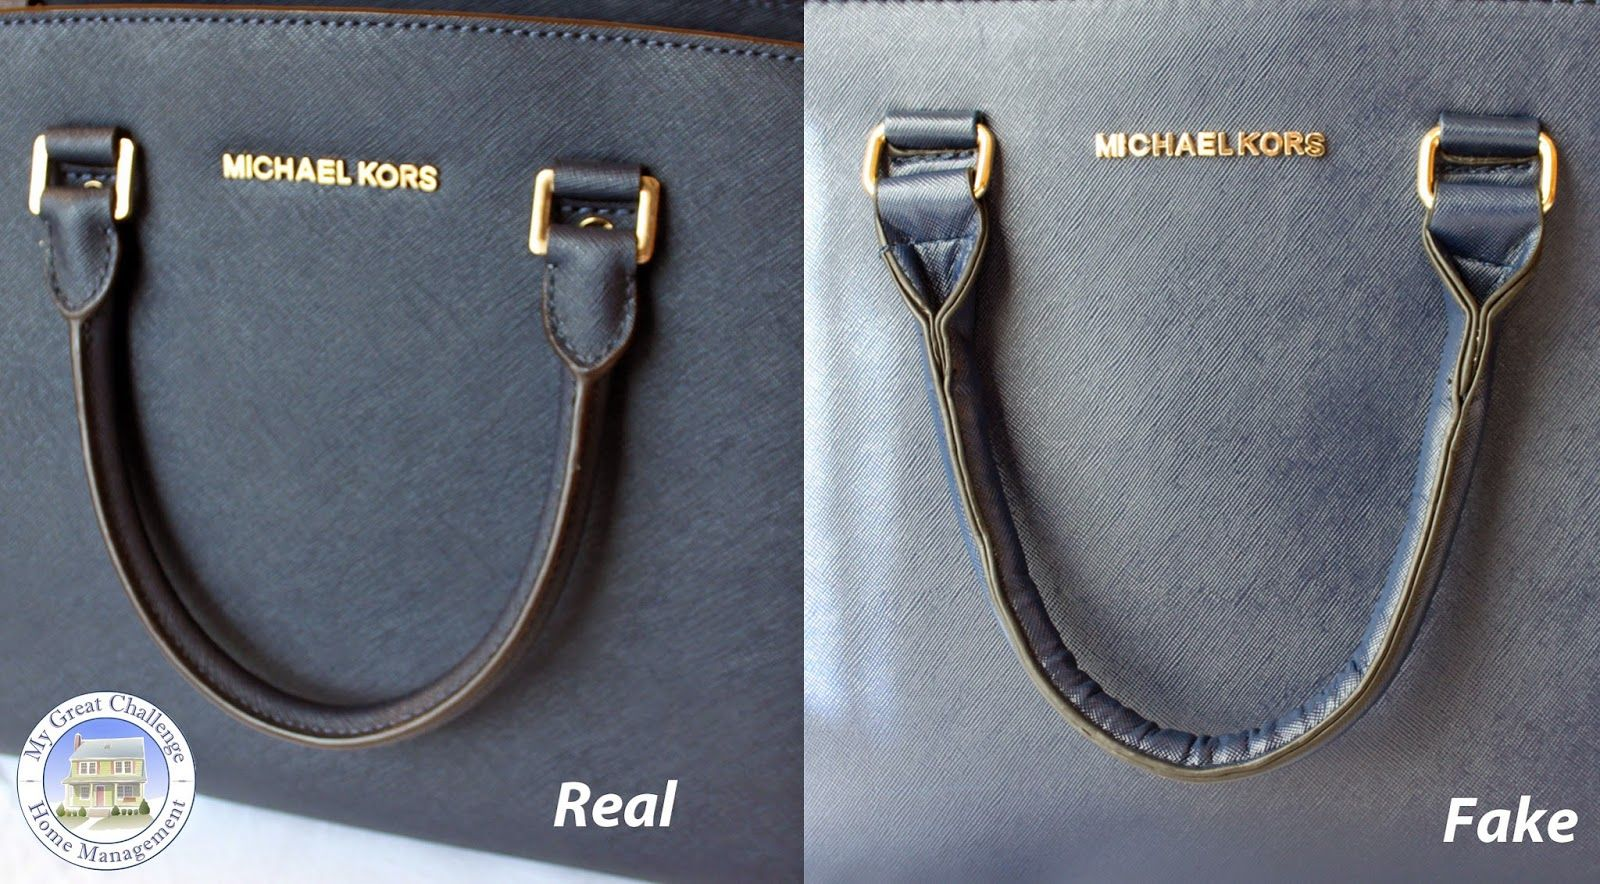 adfbc65a6ae5 Michael Kors Selma - Fake VS. Real Comparison | Michael kors ...